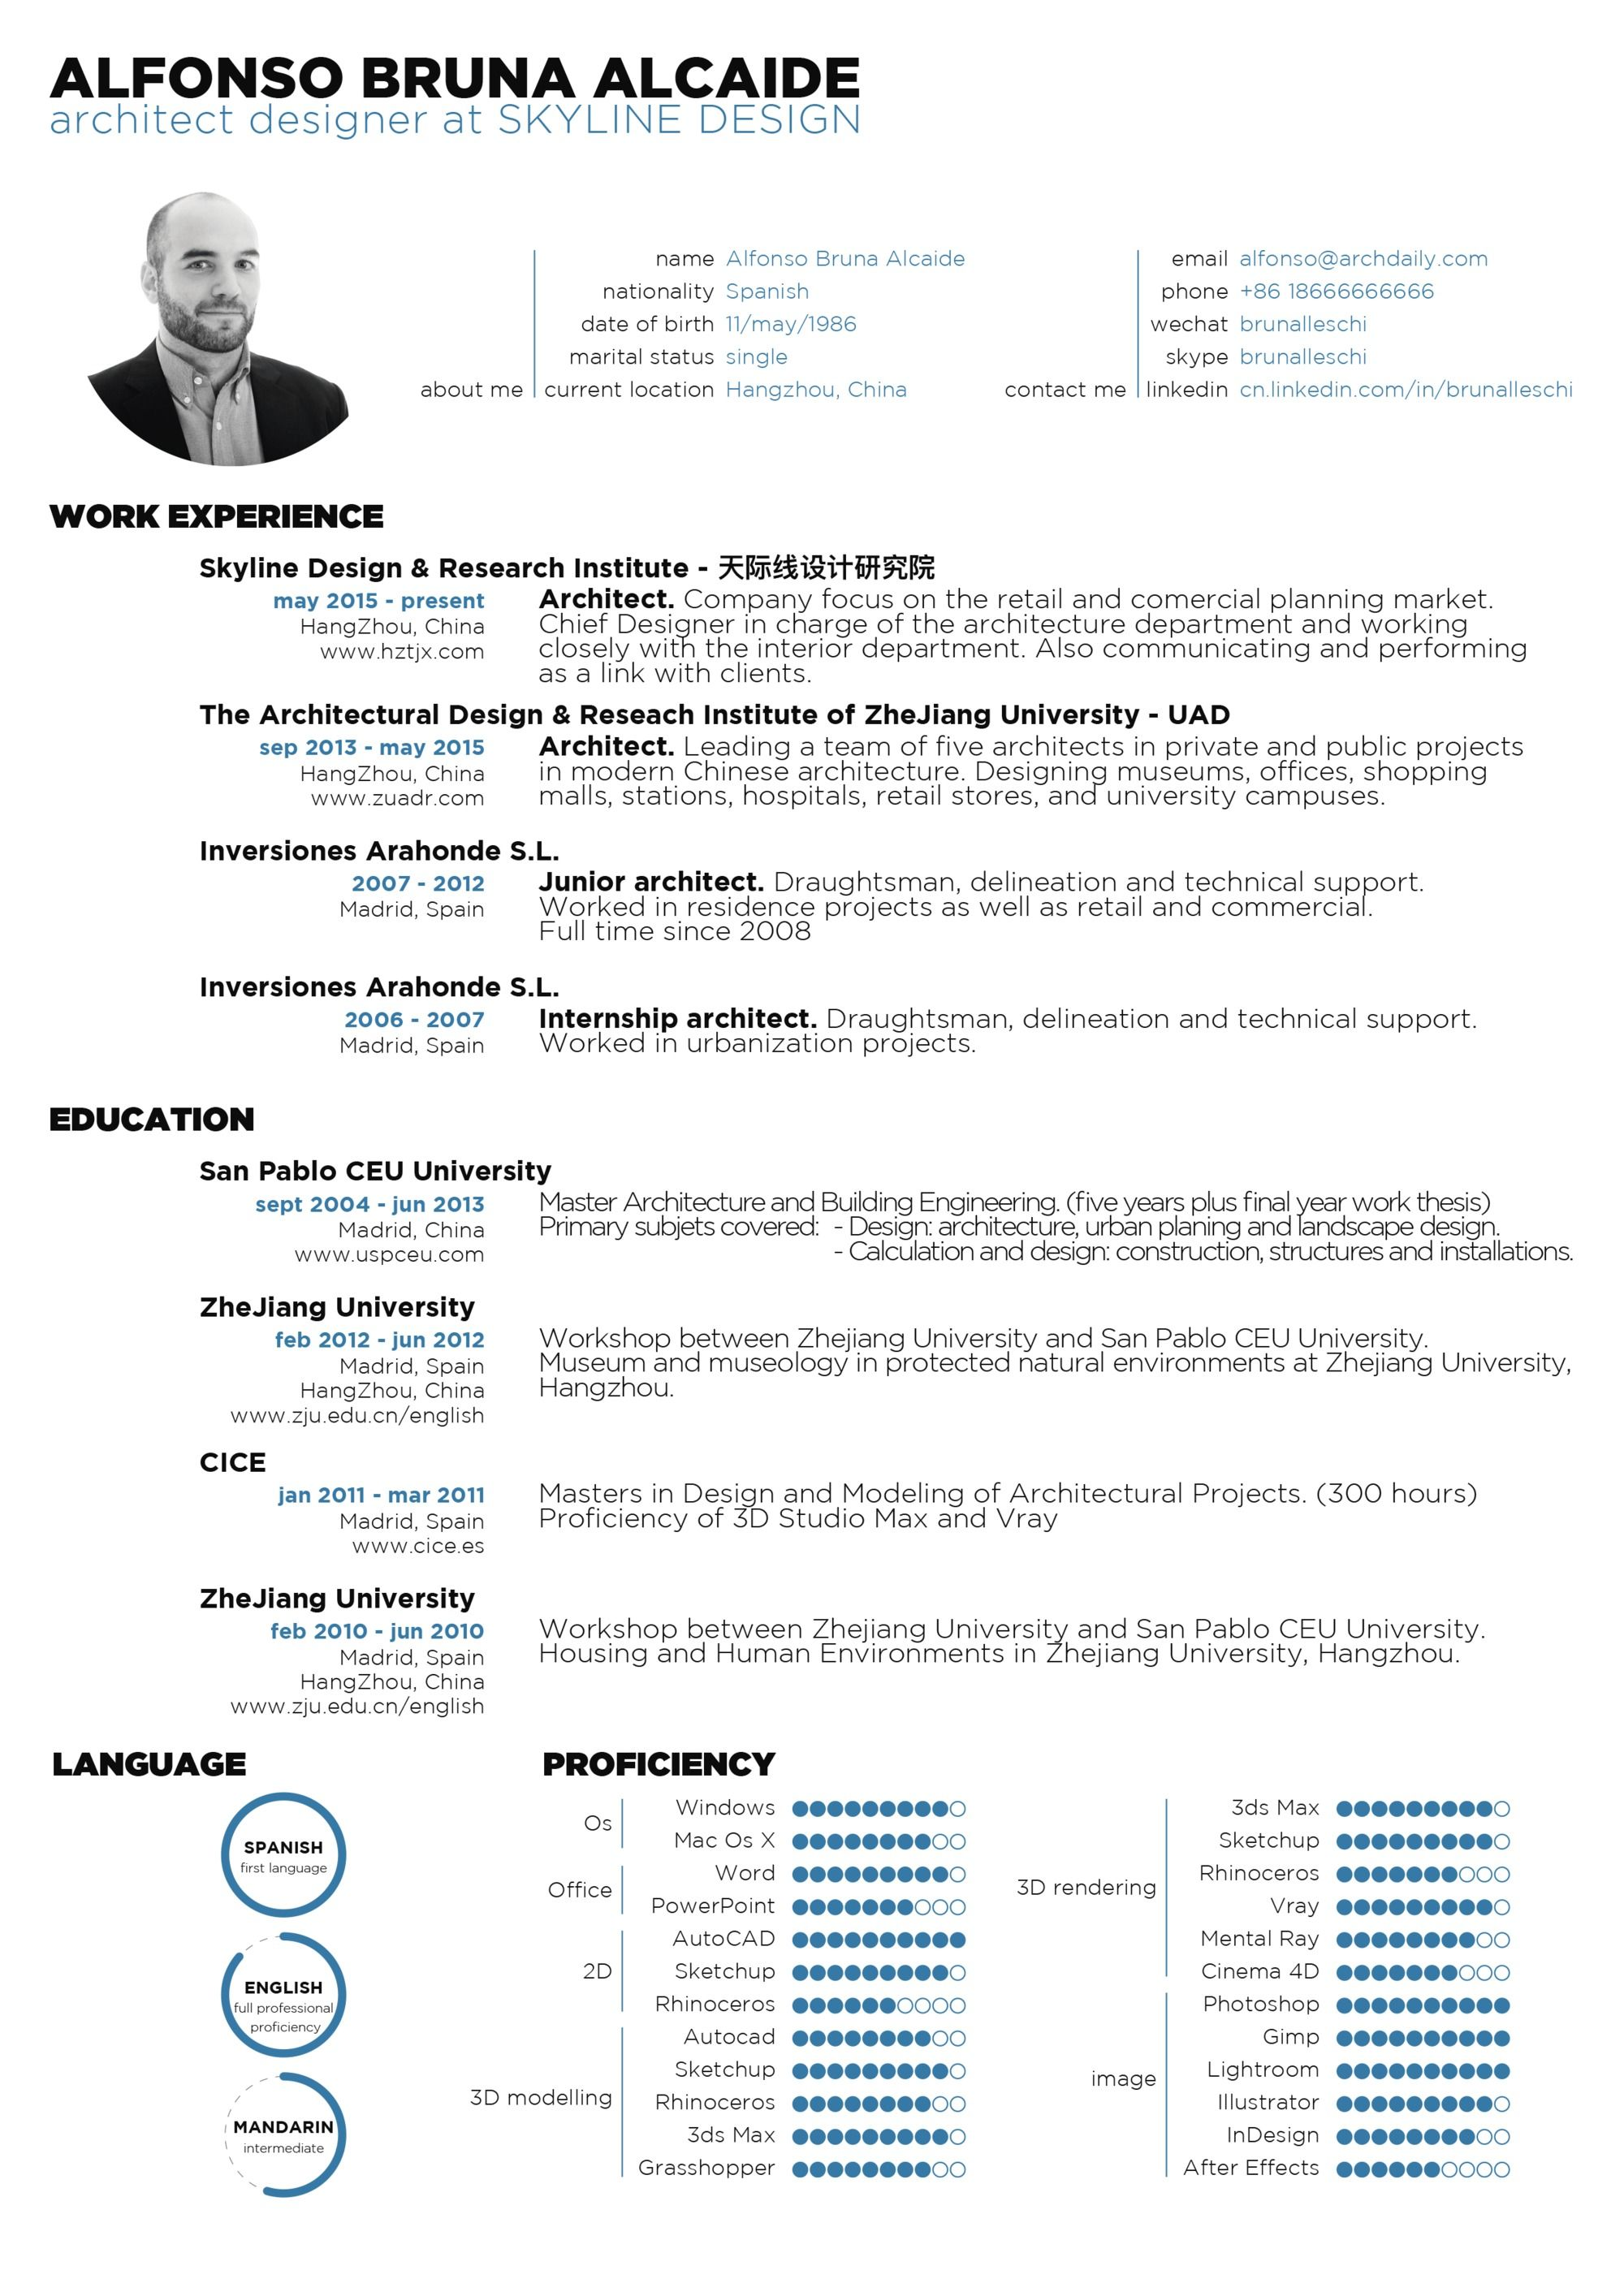 Building Engineer Resume Gallery Of The Top Architecture Résumécv Designs  9  Portfolio .